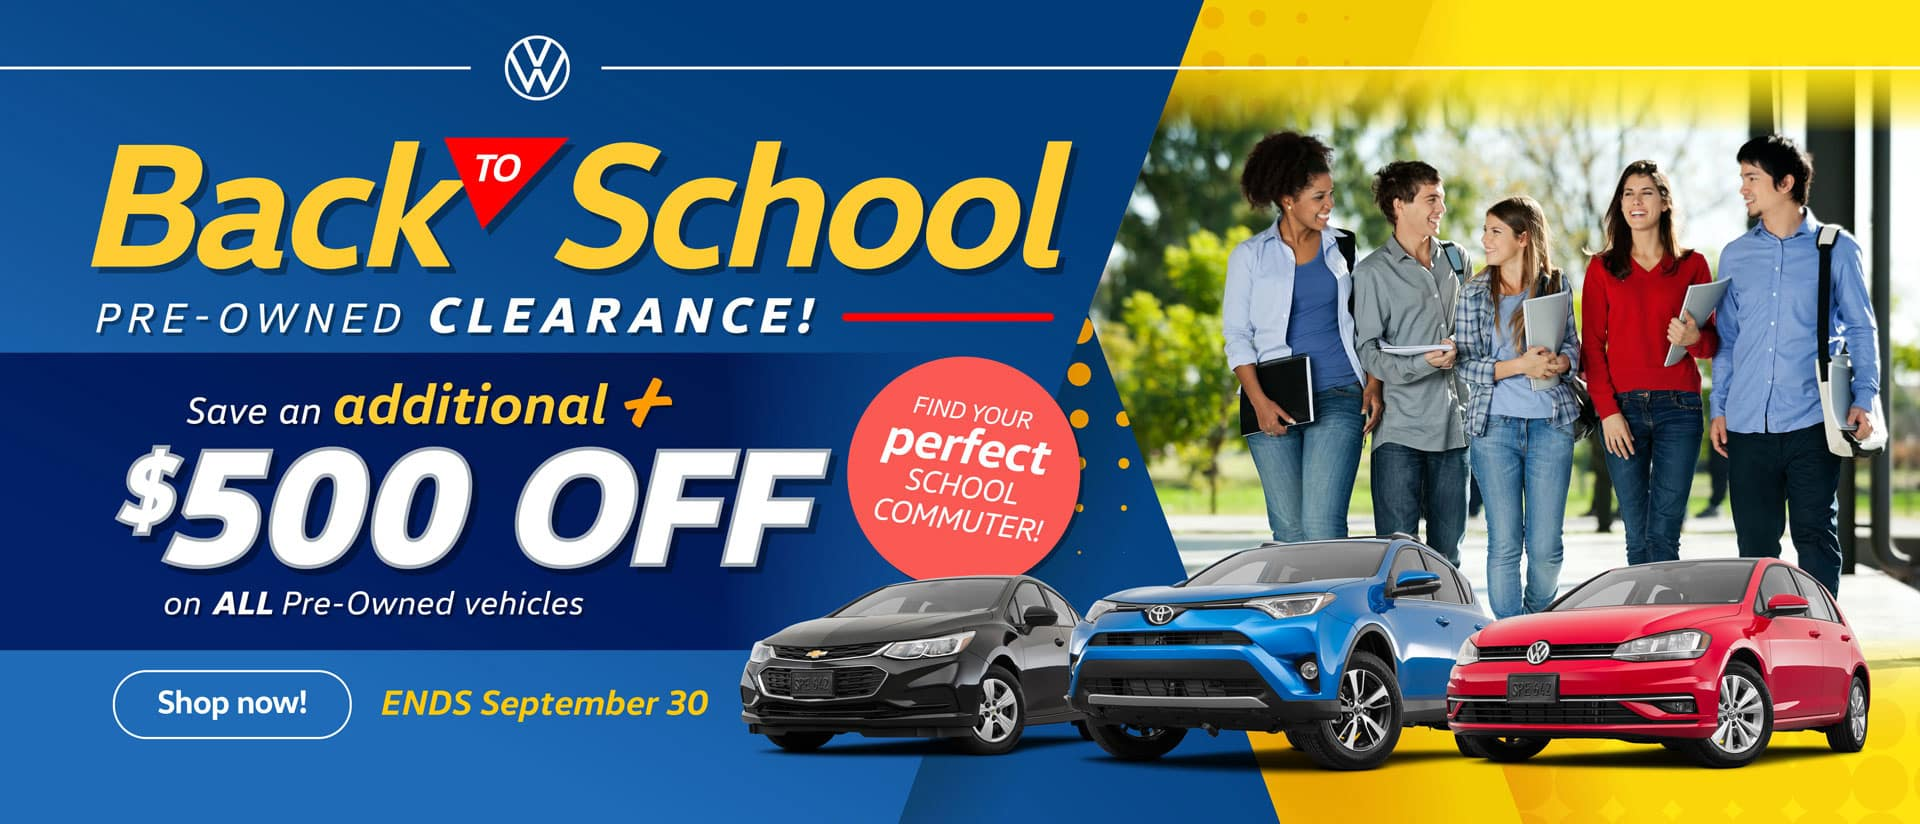 1760764_VW_Back2School_Pre-Owned_WB_ALL